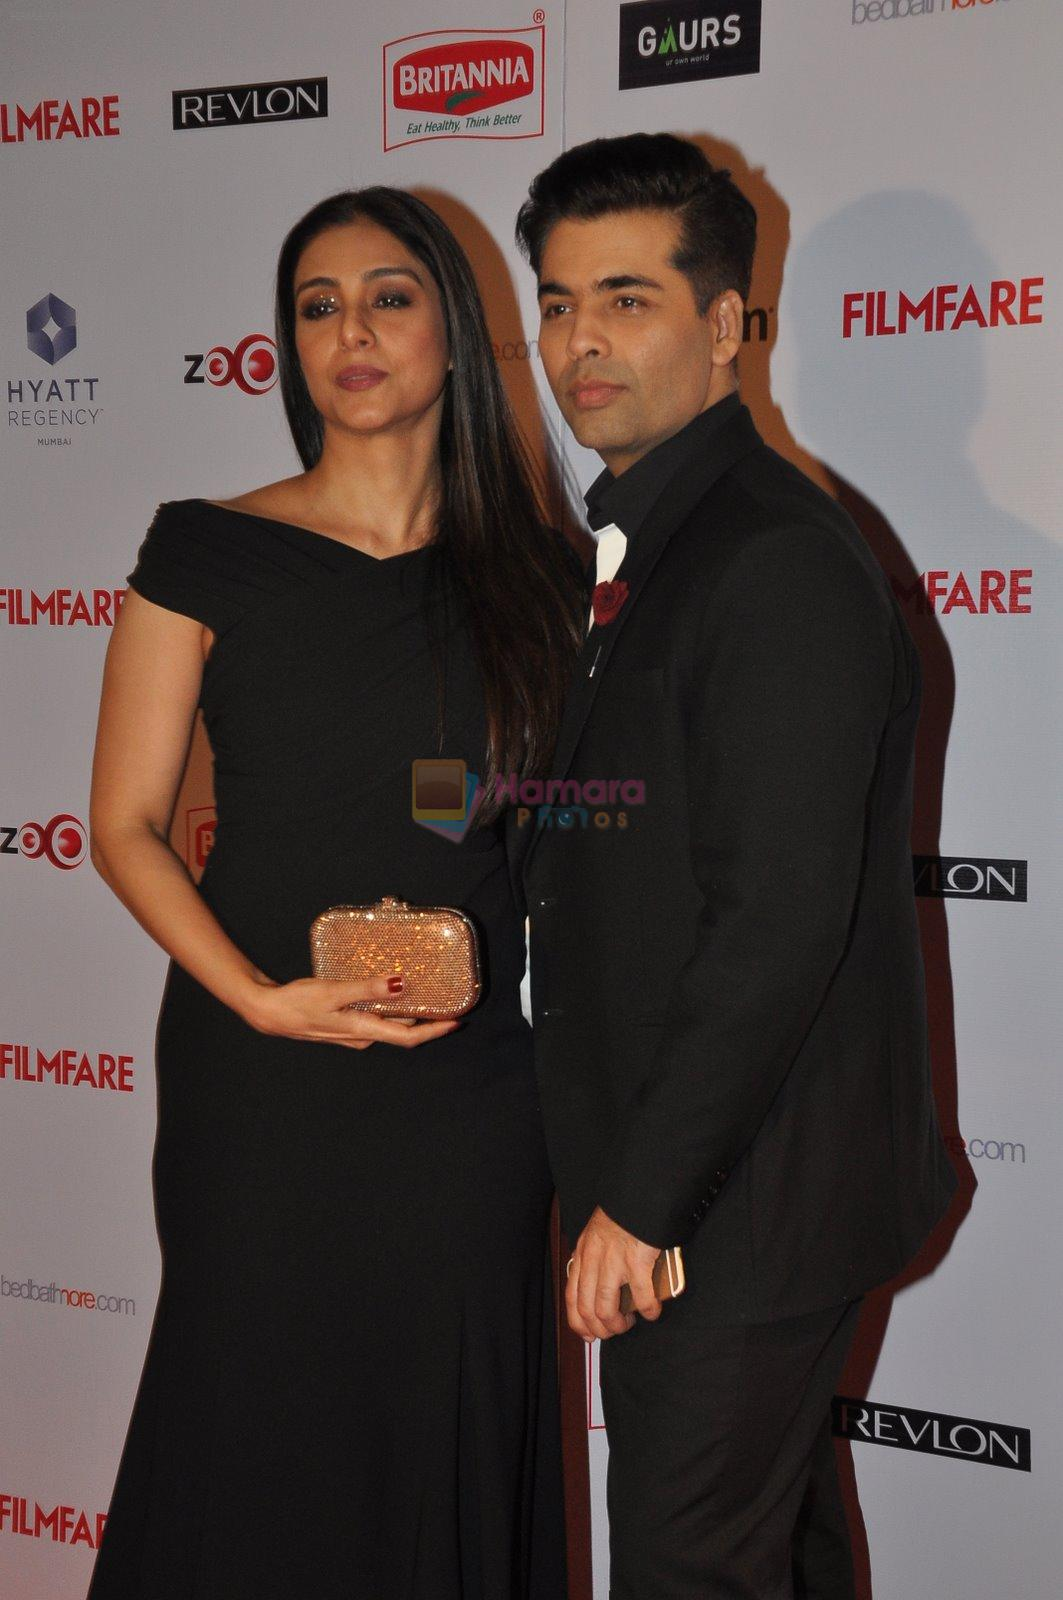 Tabu, Karan Johar at Filmfare Nominations bash in Hyatt Regency, Mumbai on 22nd Jan 2015